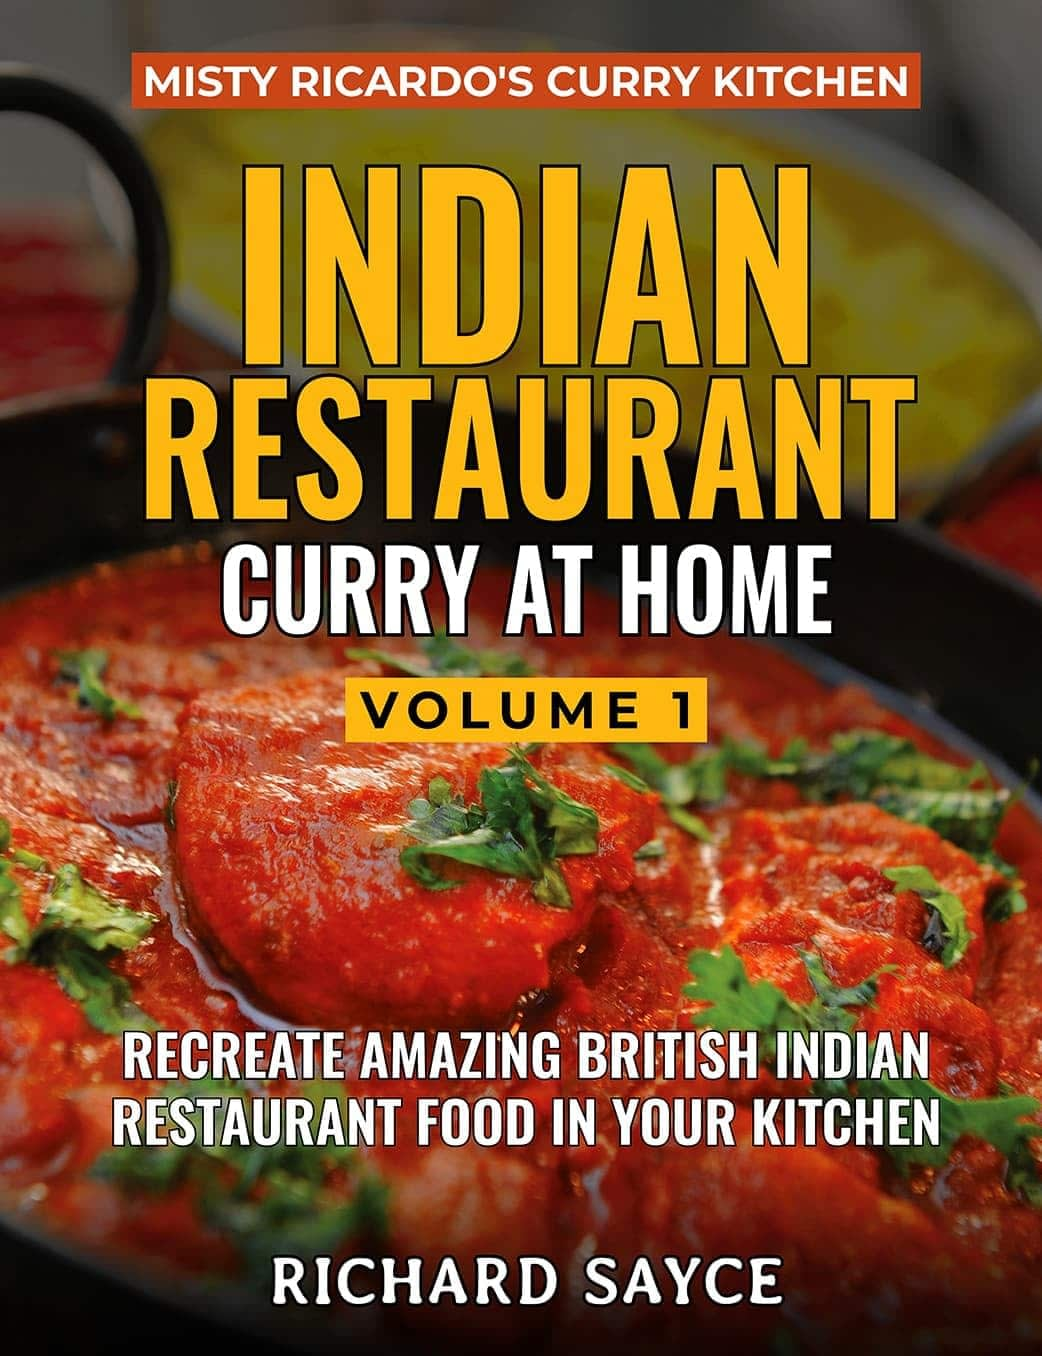 Indian Restaurant Curry at Home Volume 1